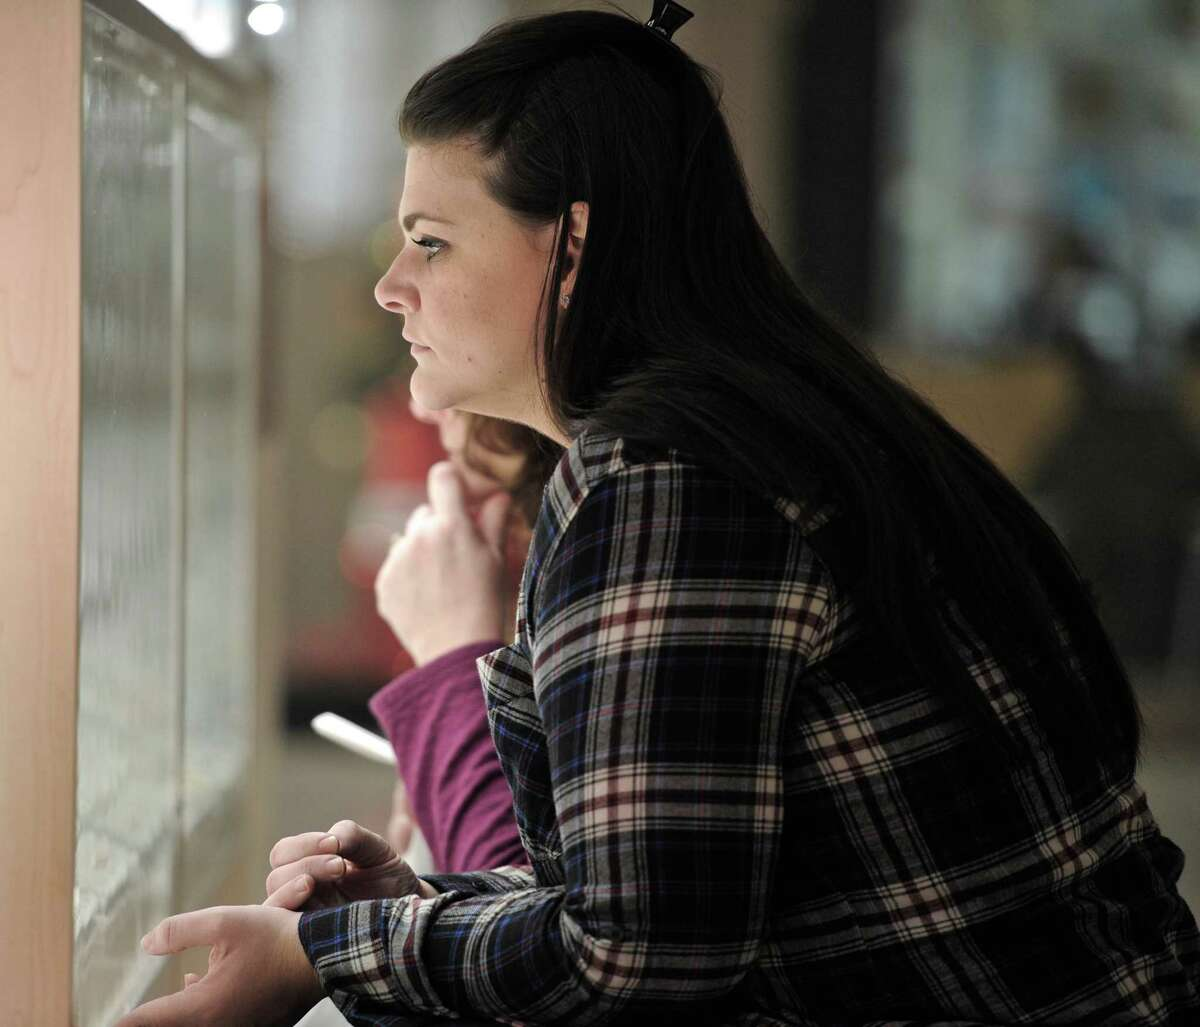 Heather Fox, of Carmel, New York, bends down to look in a display case at the Danbury Fair Mall, on Wednesday, December 17, 2014.